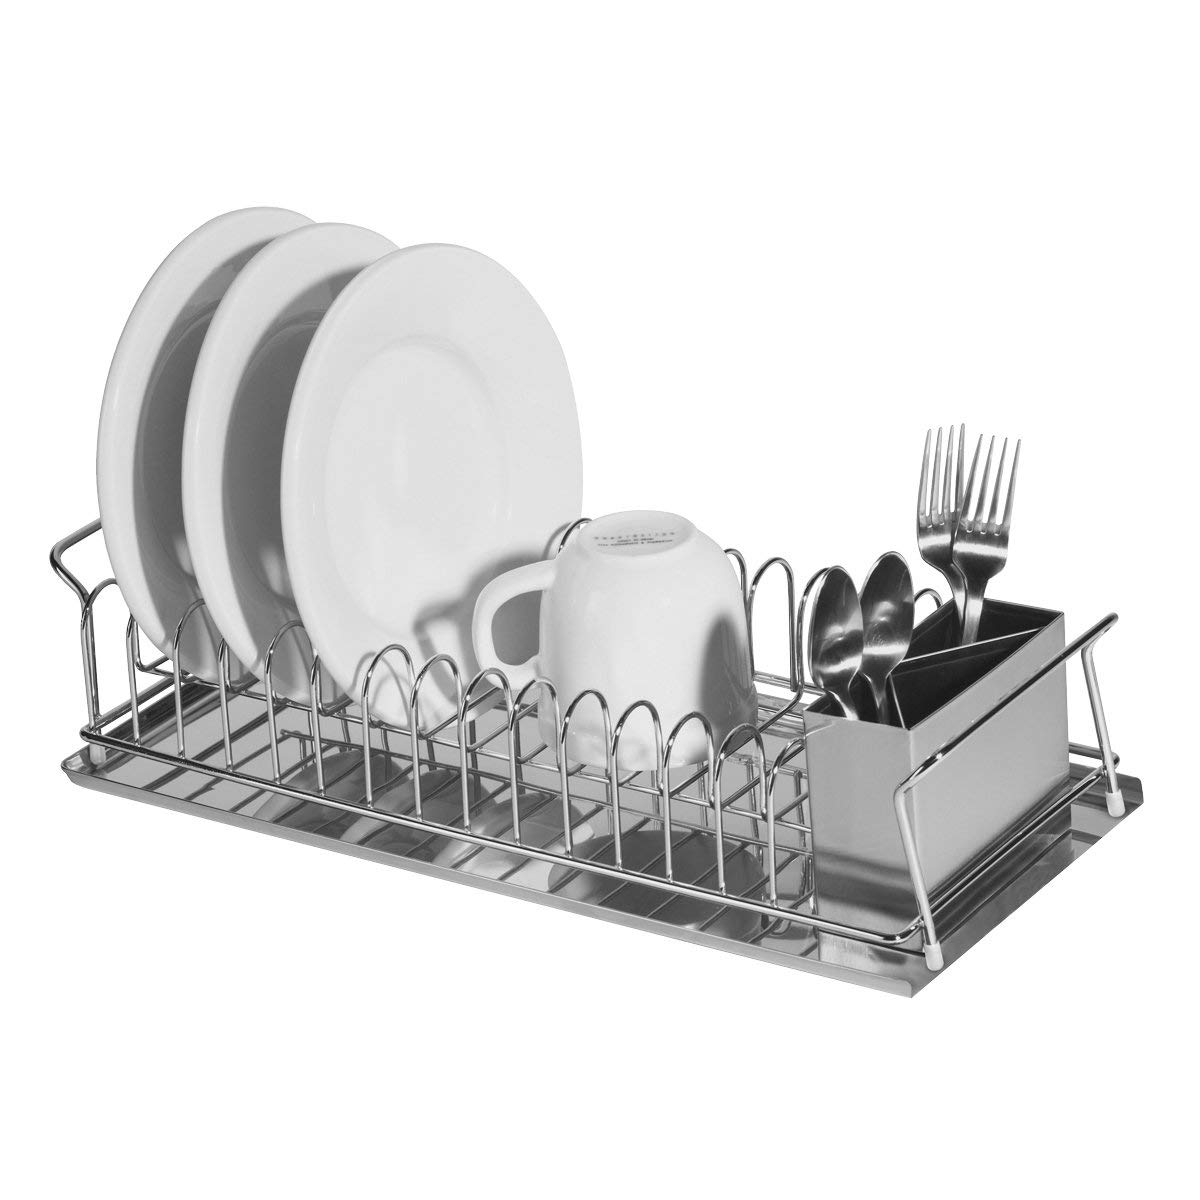 Stainless Steel Kitchen Small Dish Rack Wire Metal Dish Drying Rack Buy Wire Metal Drying Rack Stainless Steel Dish Rack Dish Drying Rack Product On Alibaba Com